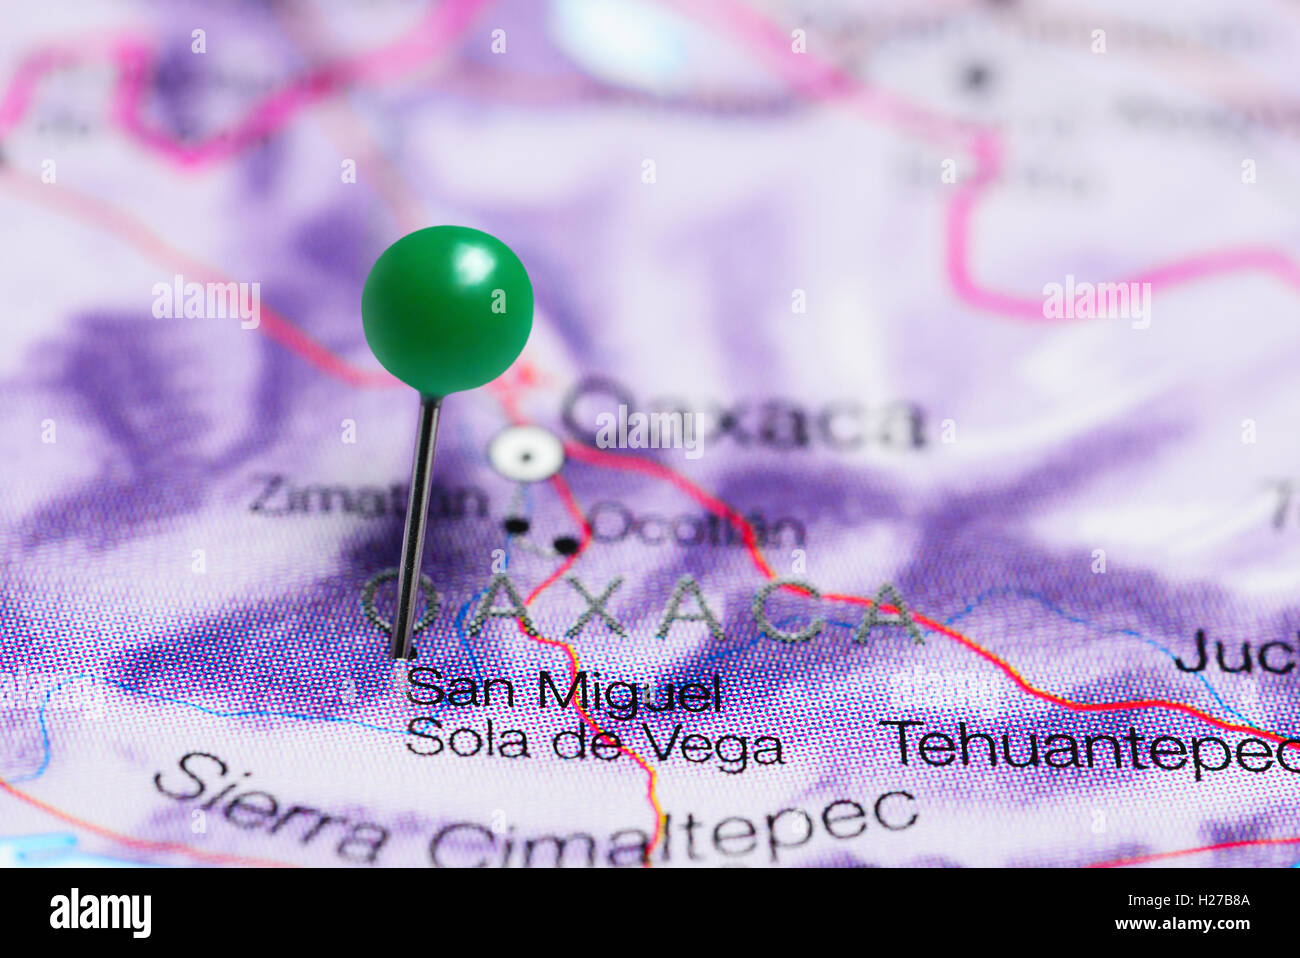 San Miguel Sola De Vega Pinned On A Map Of Mexico Stock Photo